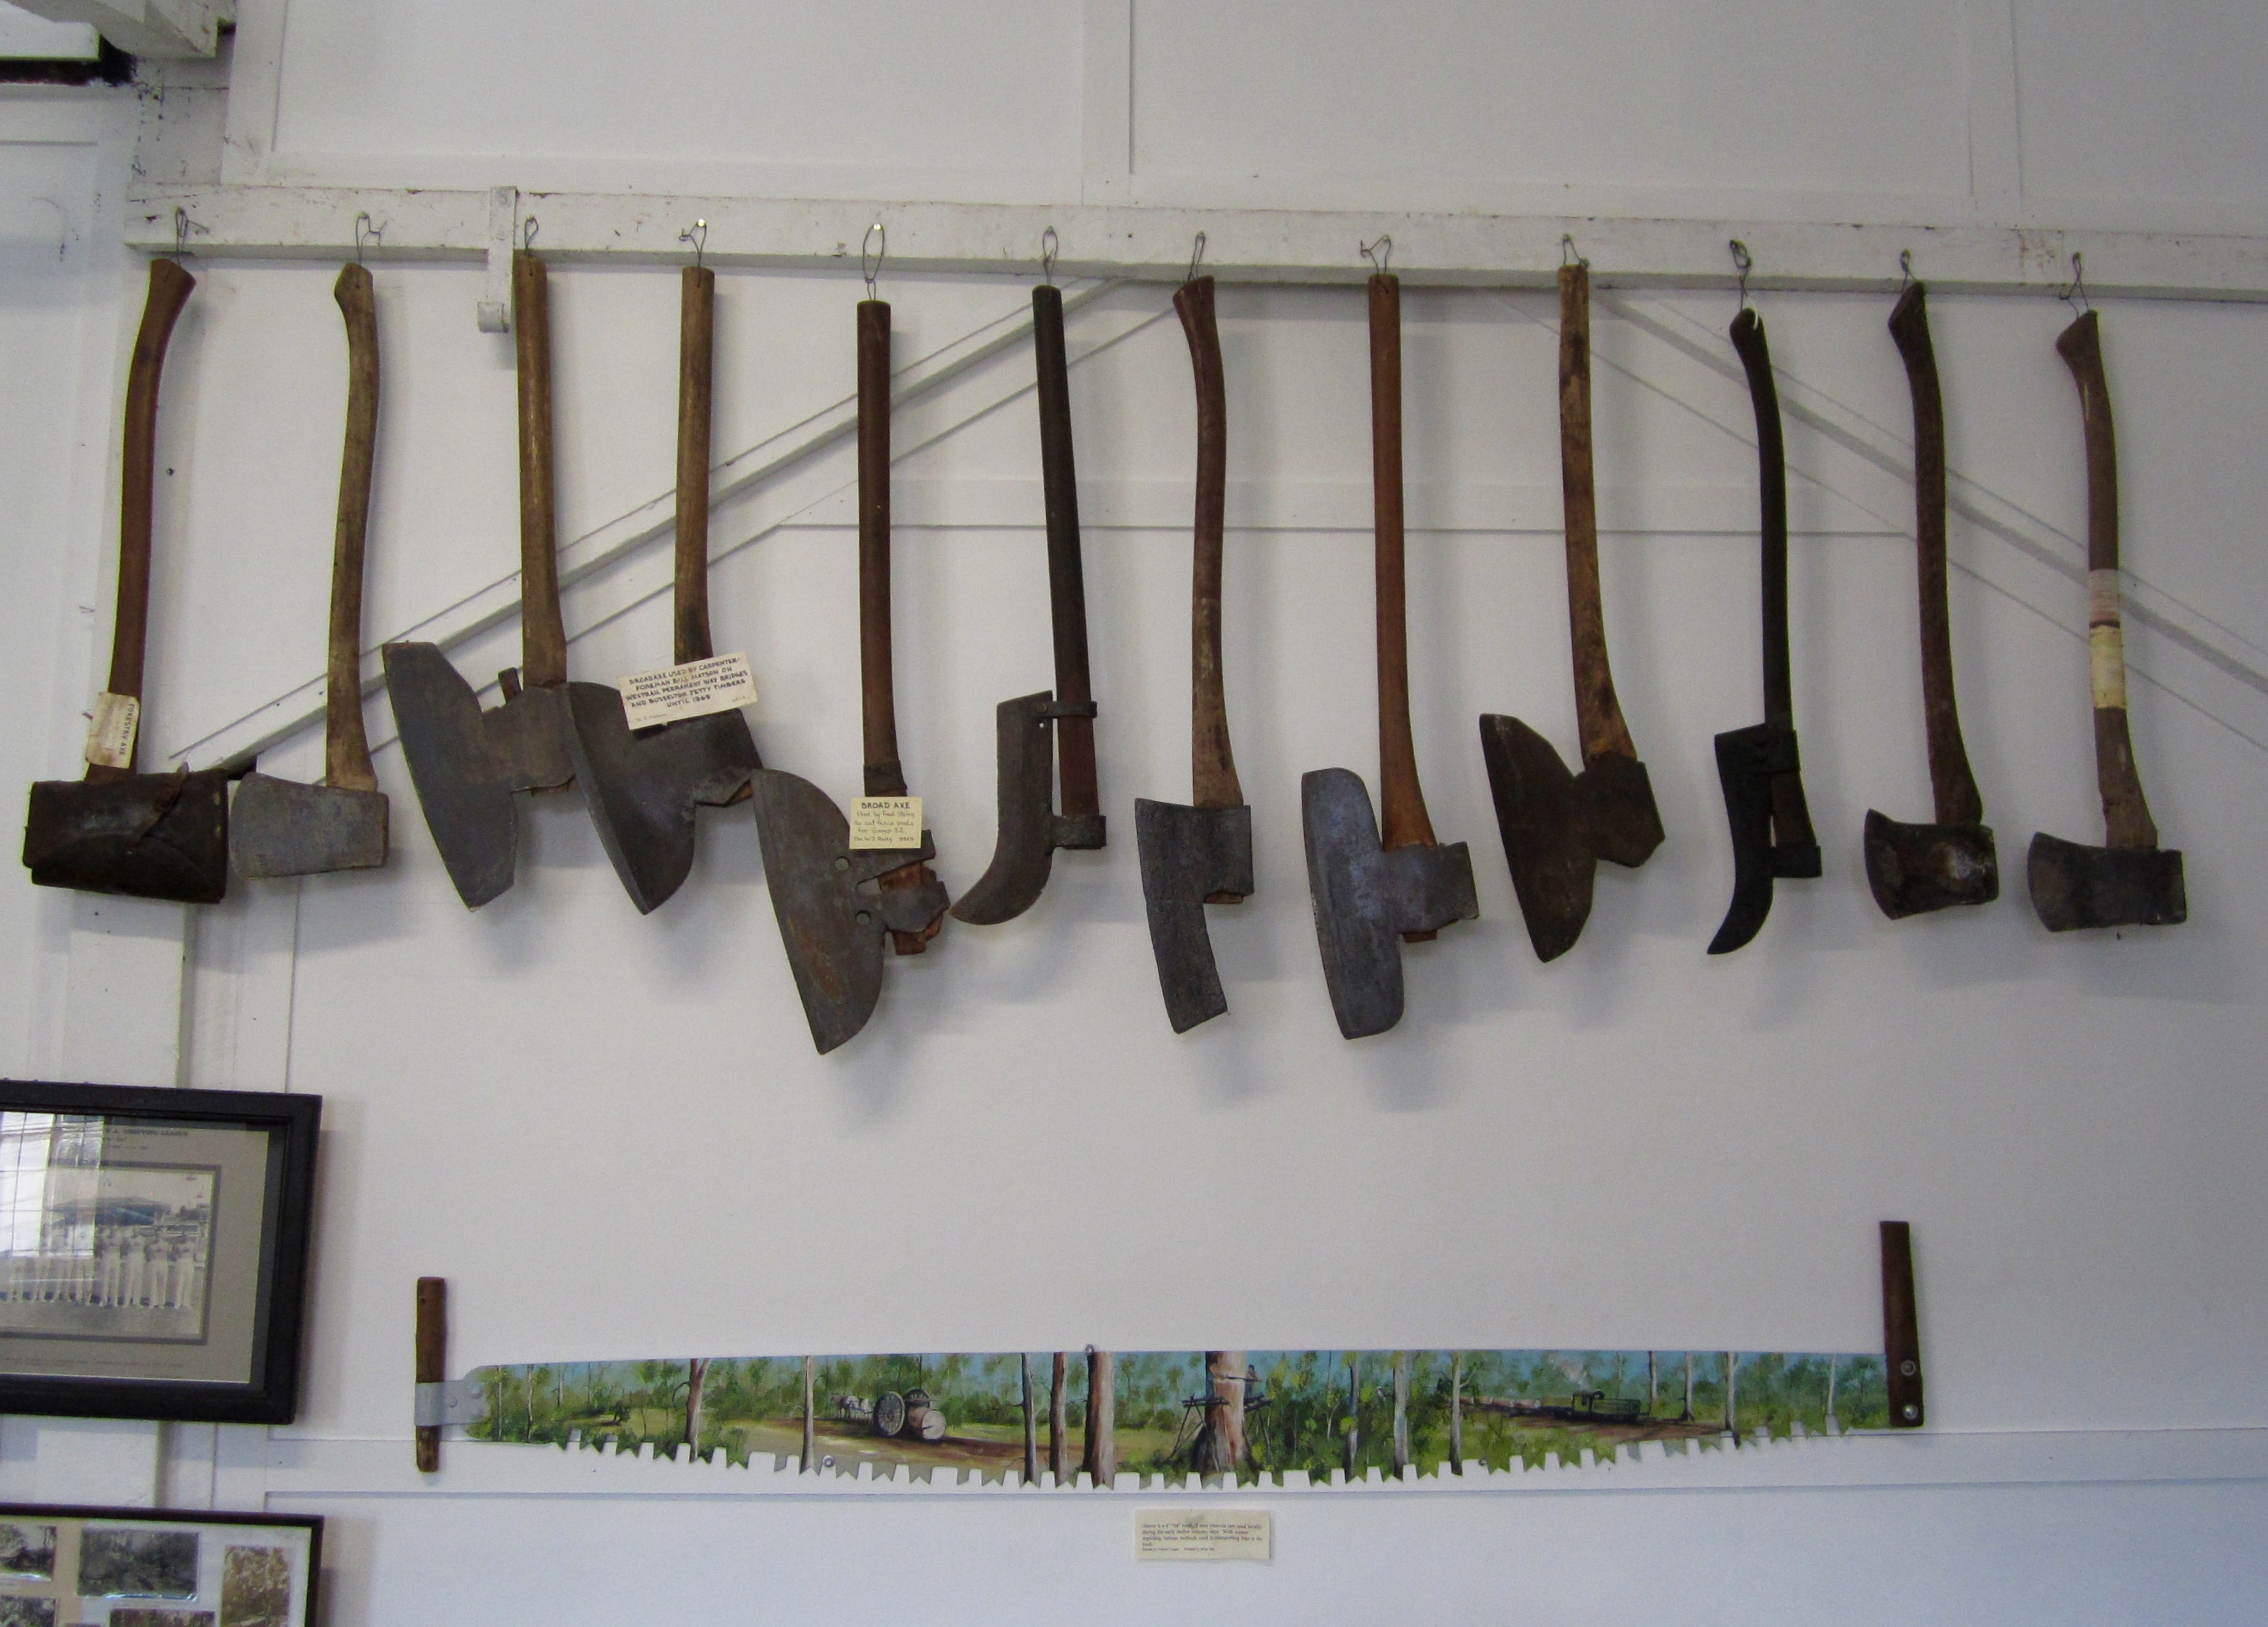 Axe collection Busselton Museum